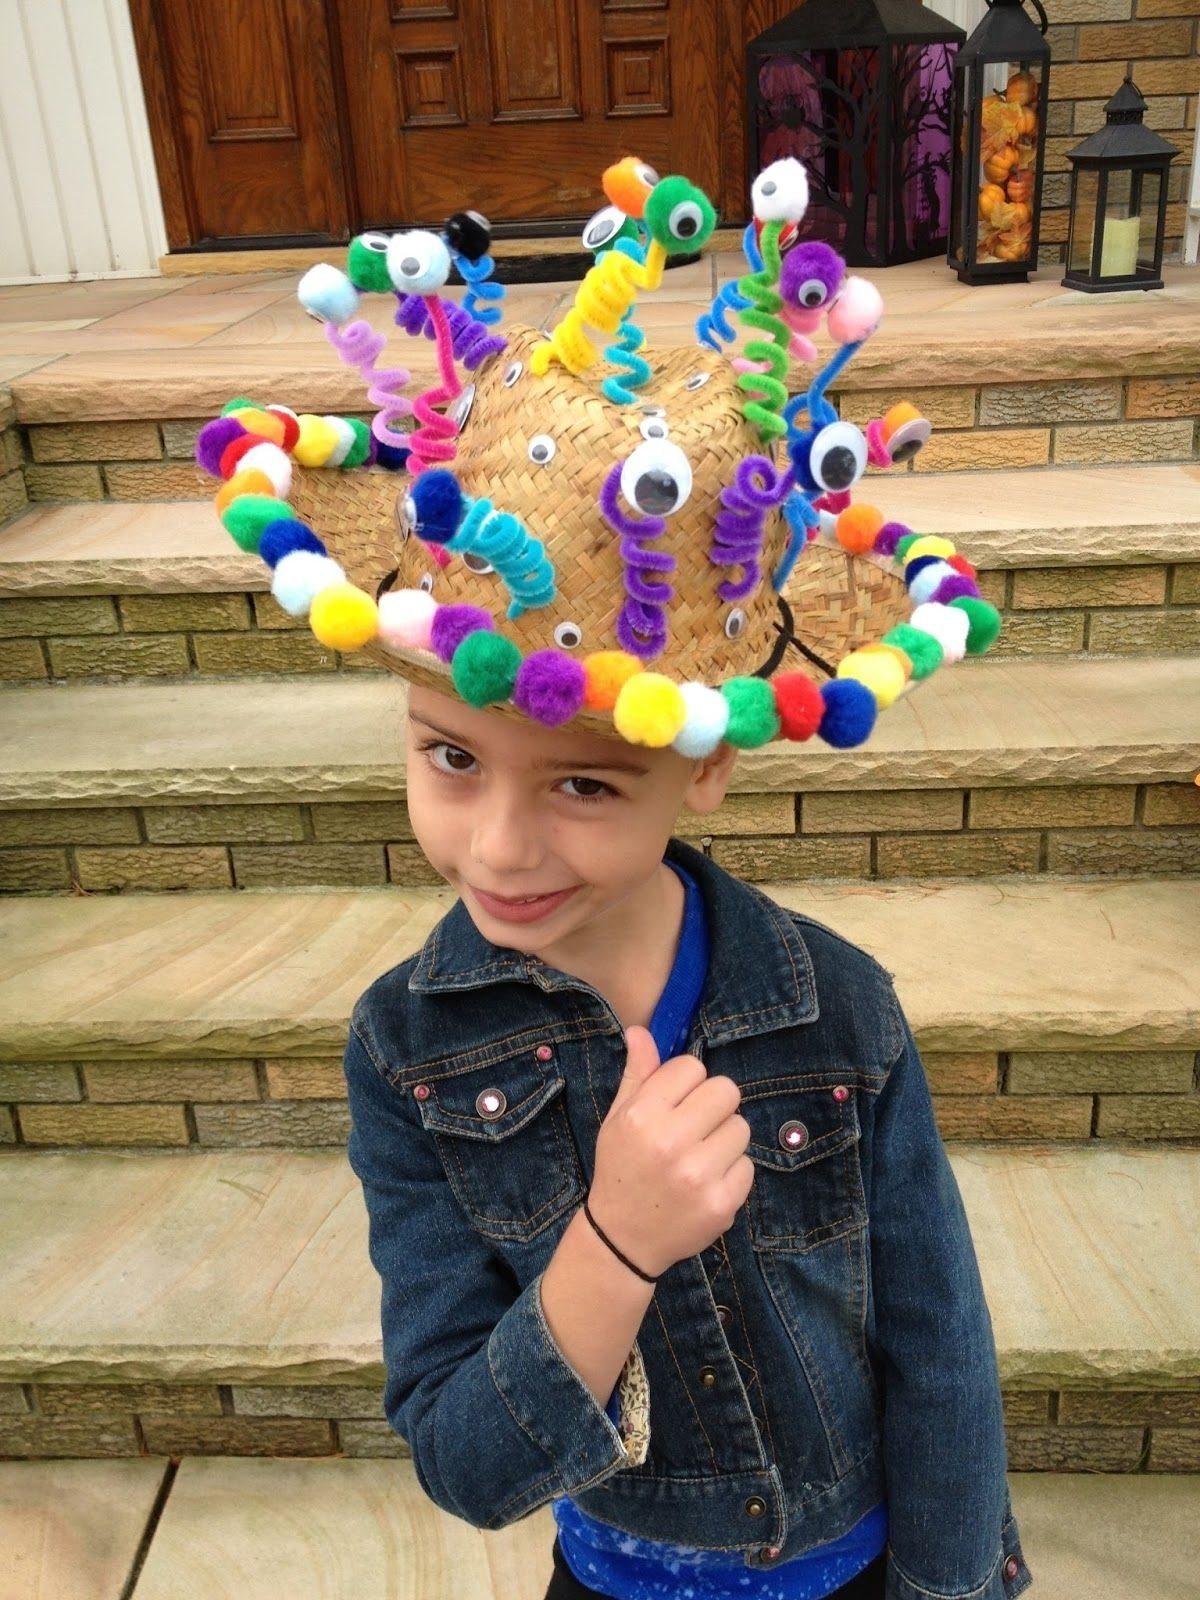 10 Fantastic Crazy Hat Ideas For Kids diy inspo for cams crazy hat day school cameron would want to 2020